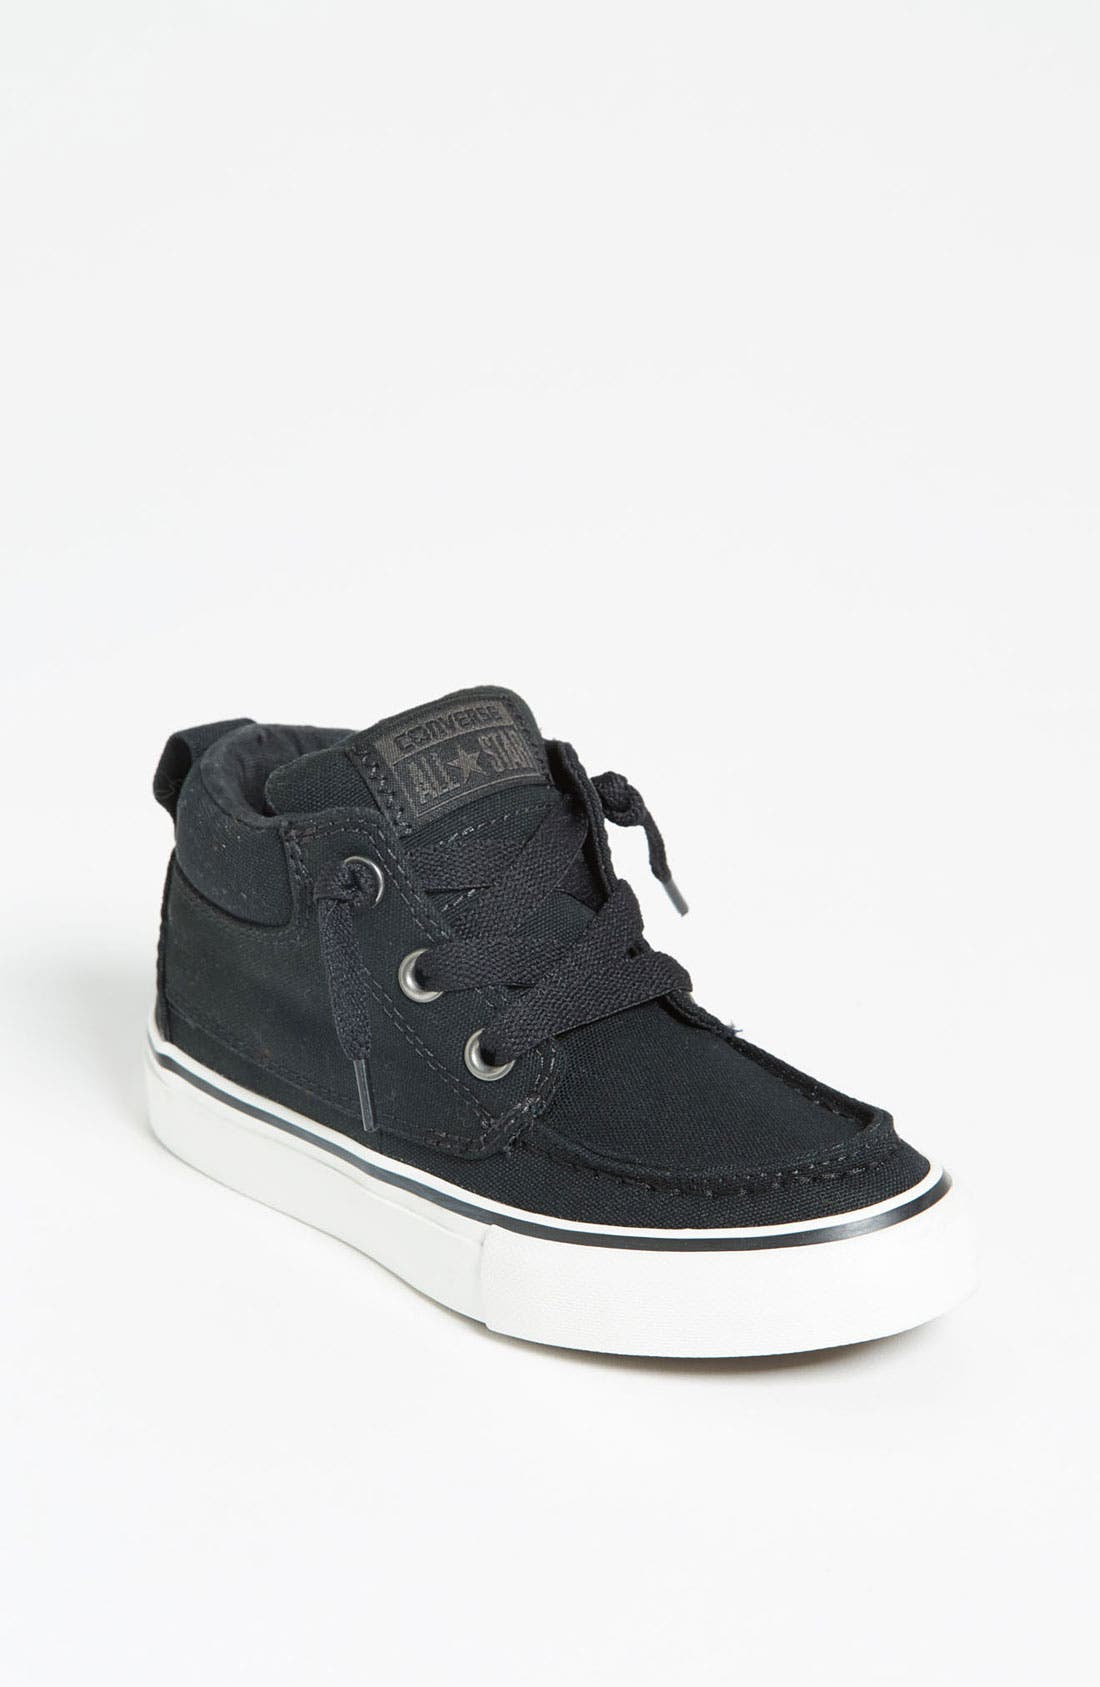 Main Image - Converse Chuck Taylor® All Star® 'Chukka' Sneaker (Toddler, Little Kid & Big Kid)